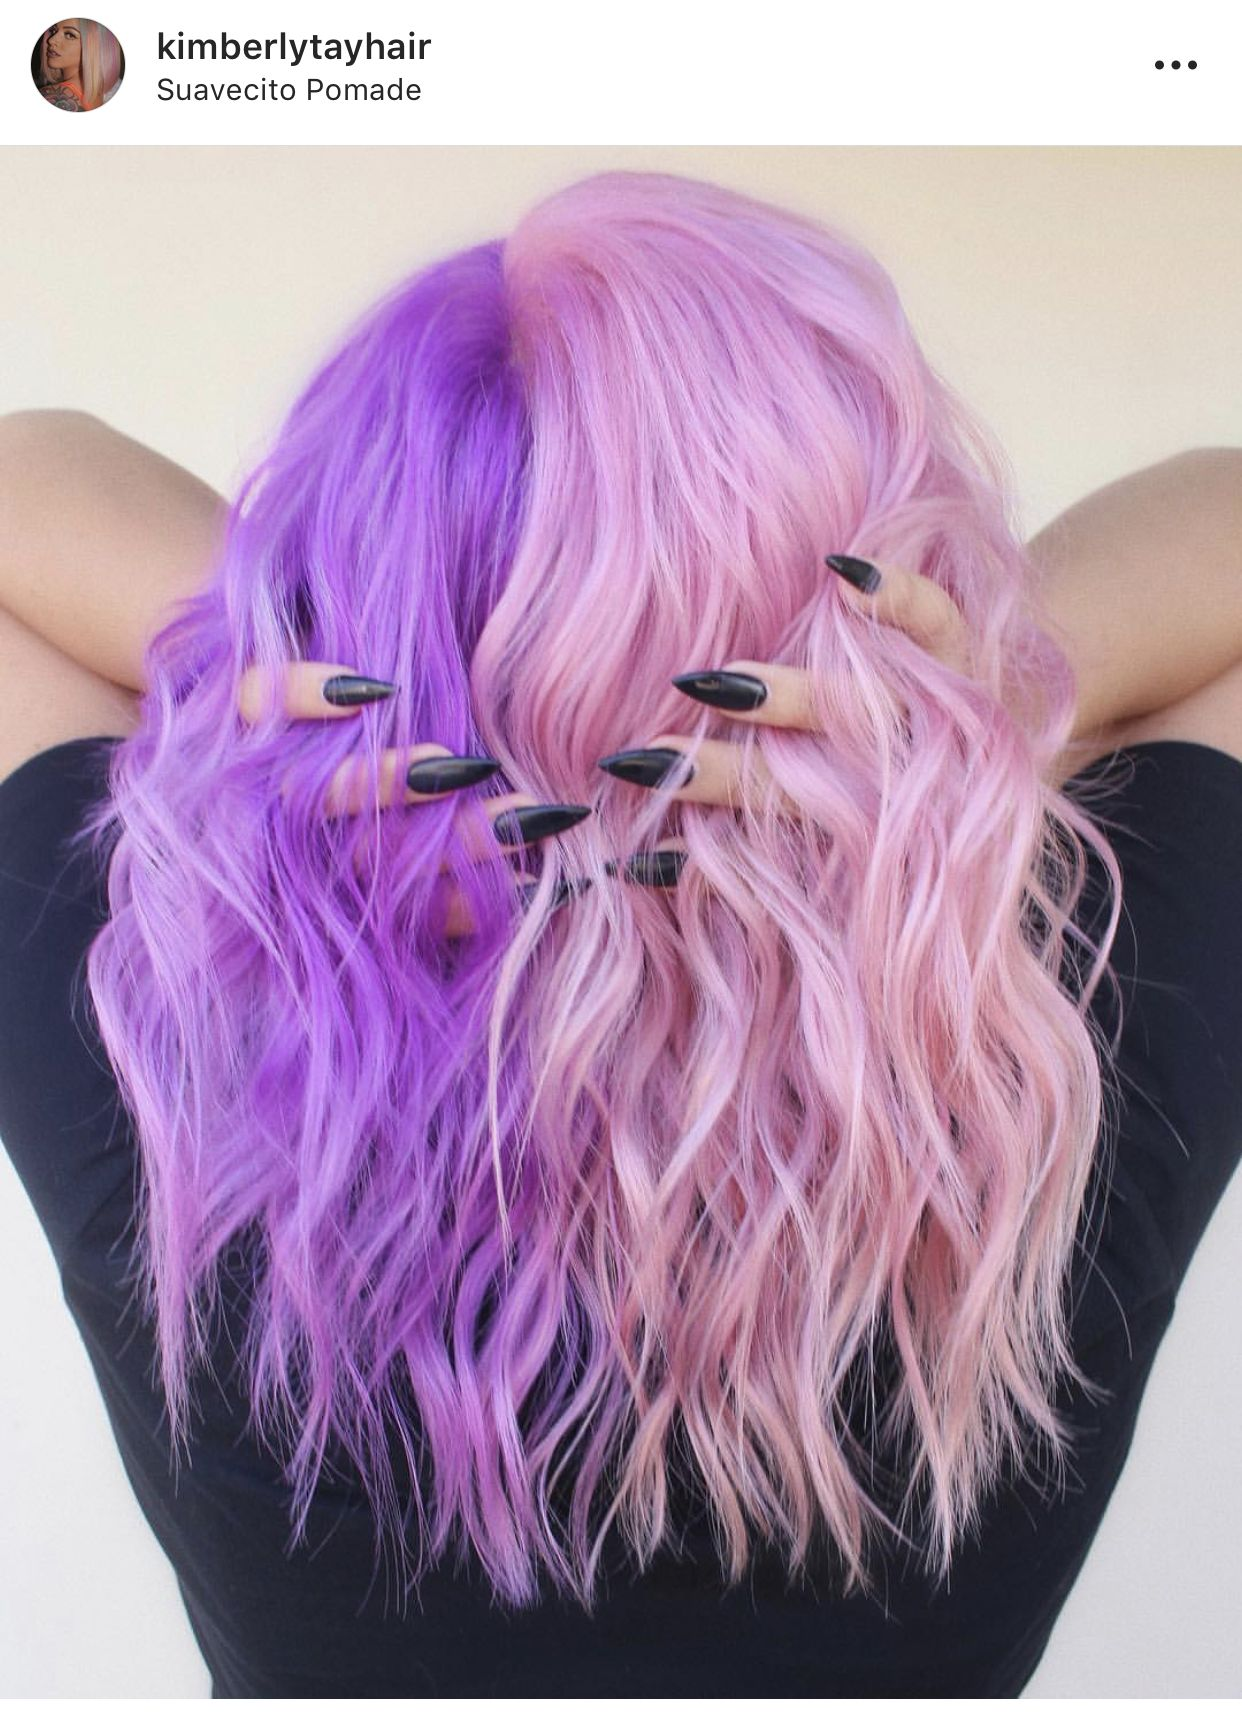 Pin By Jessica Bell On Hair Colors Hair Inspo Color Aesthetic Hair Split Dyed Hair